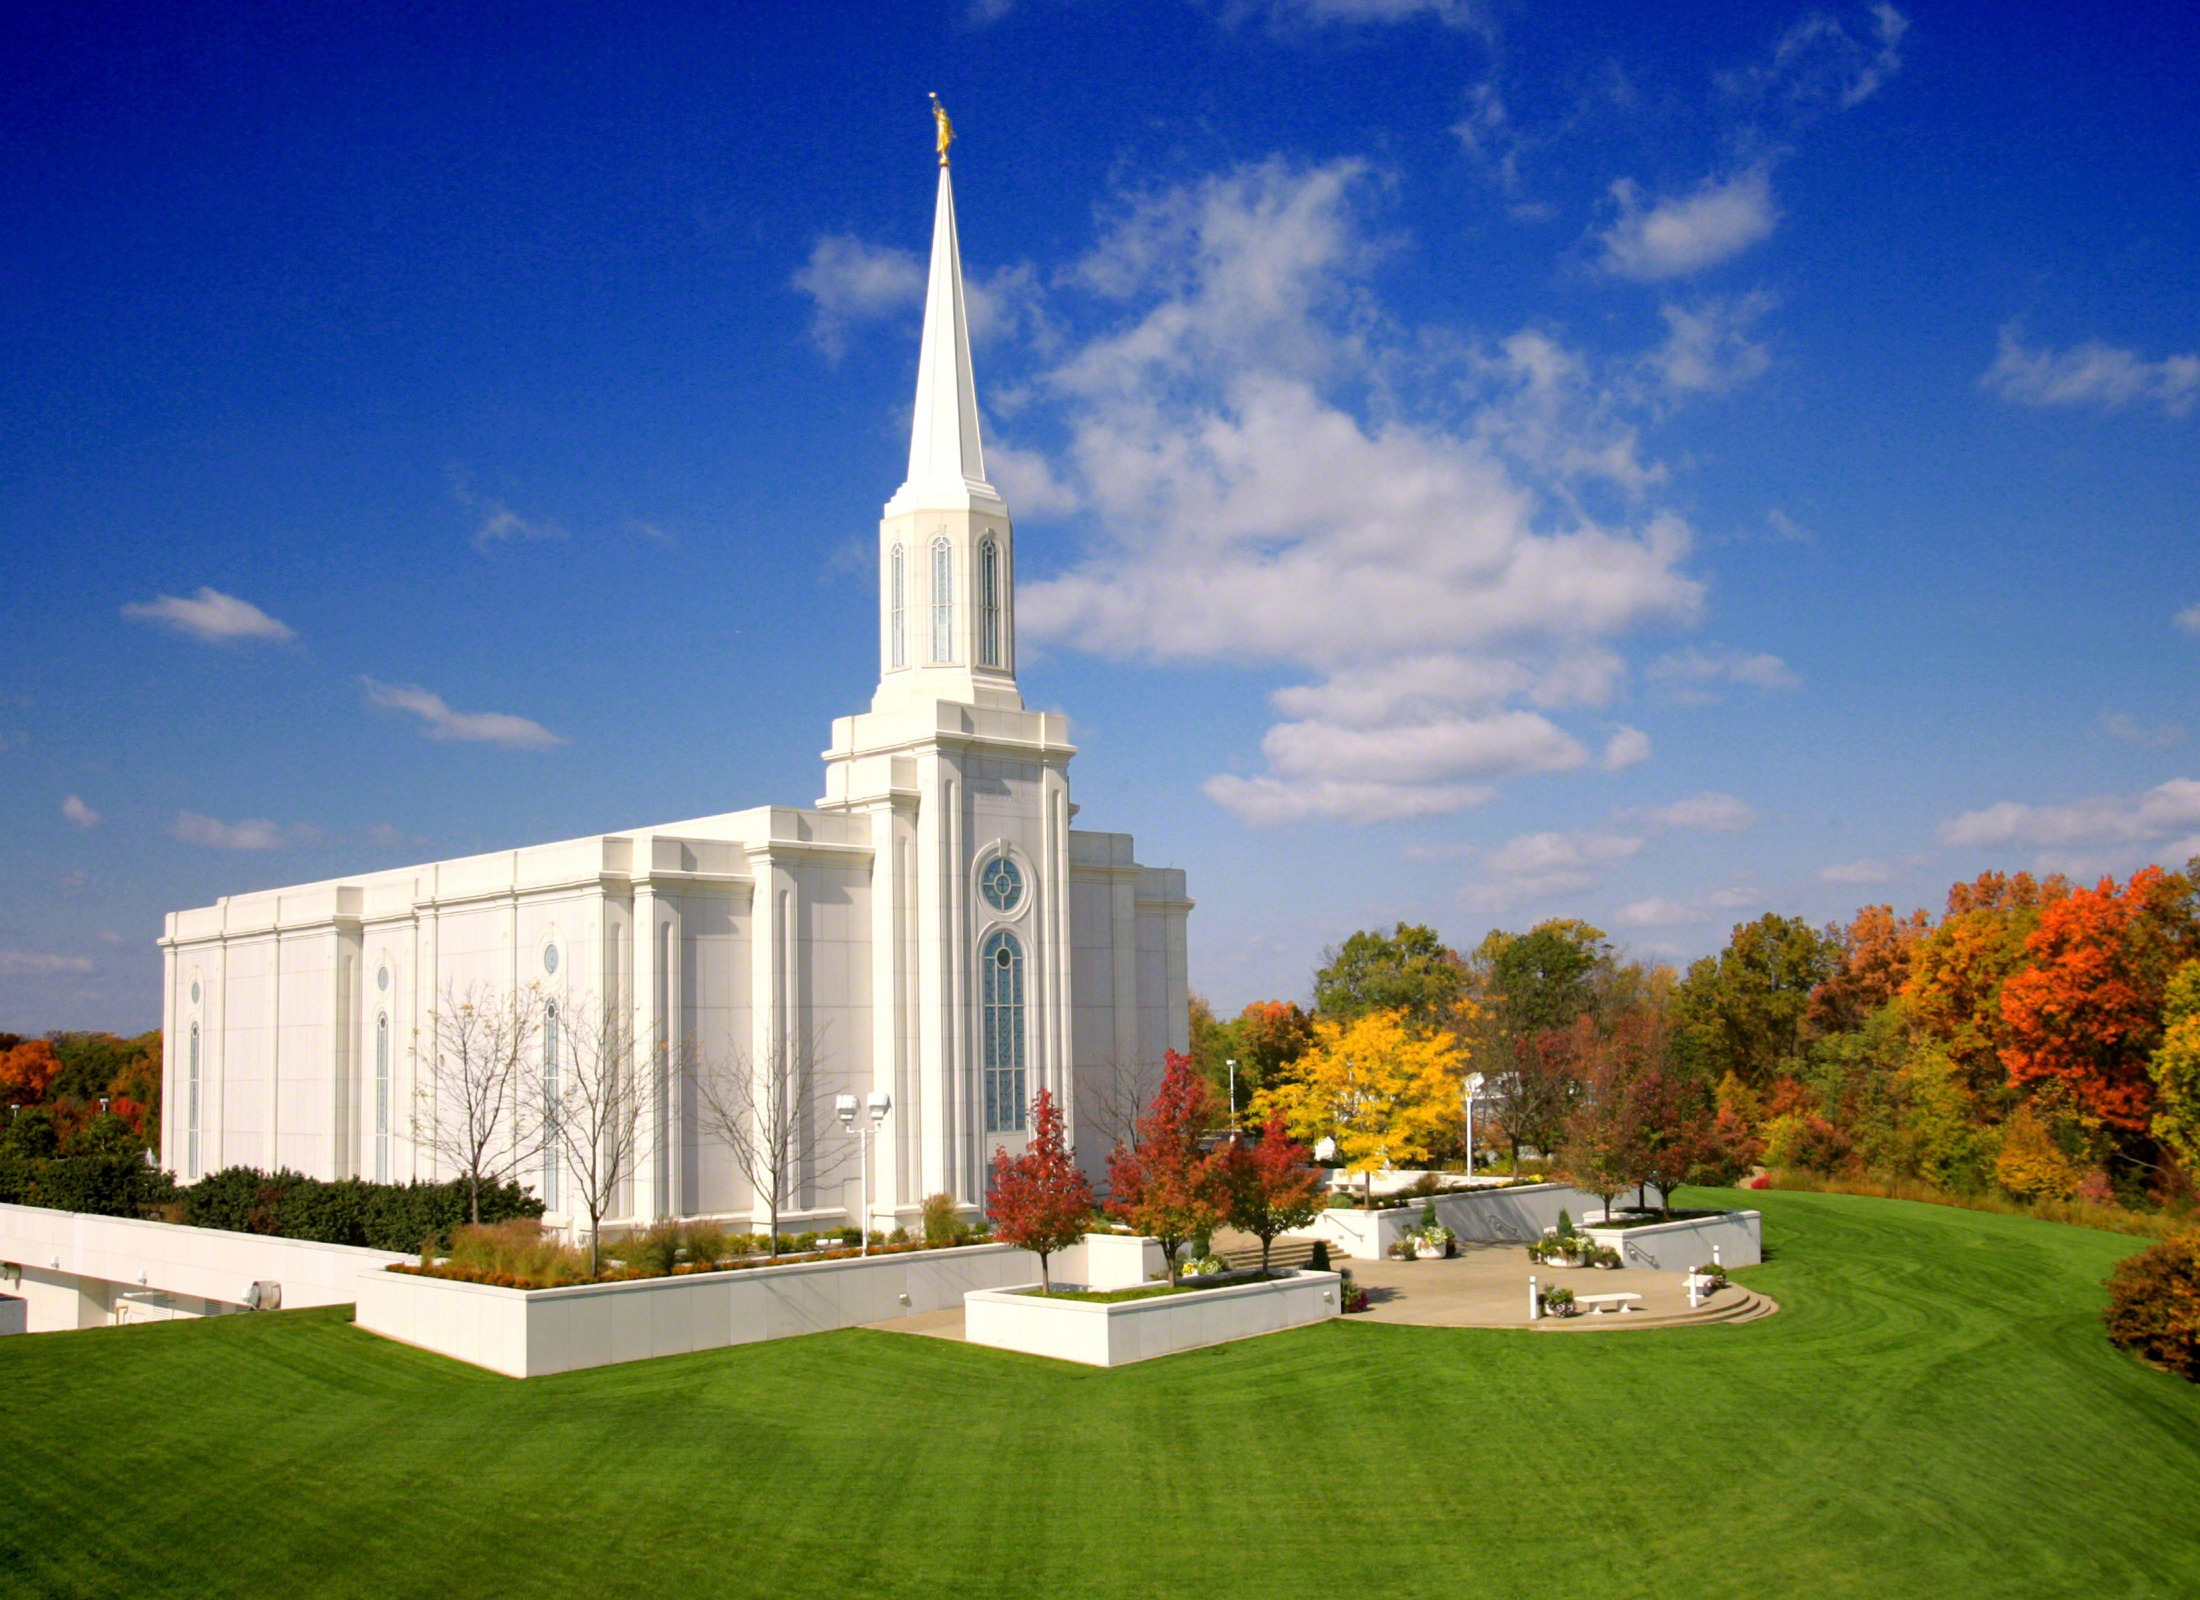 St louis missouri temple in the fall - Lds temple wallpaper ...